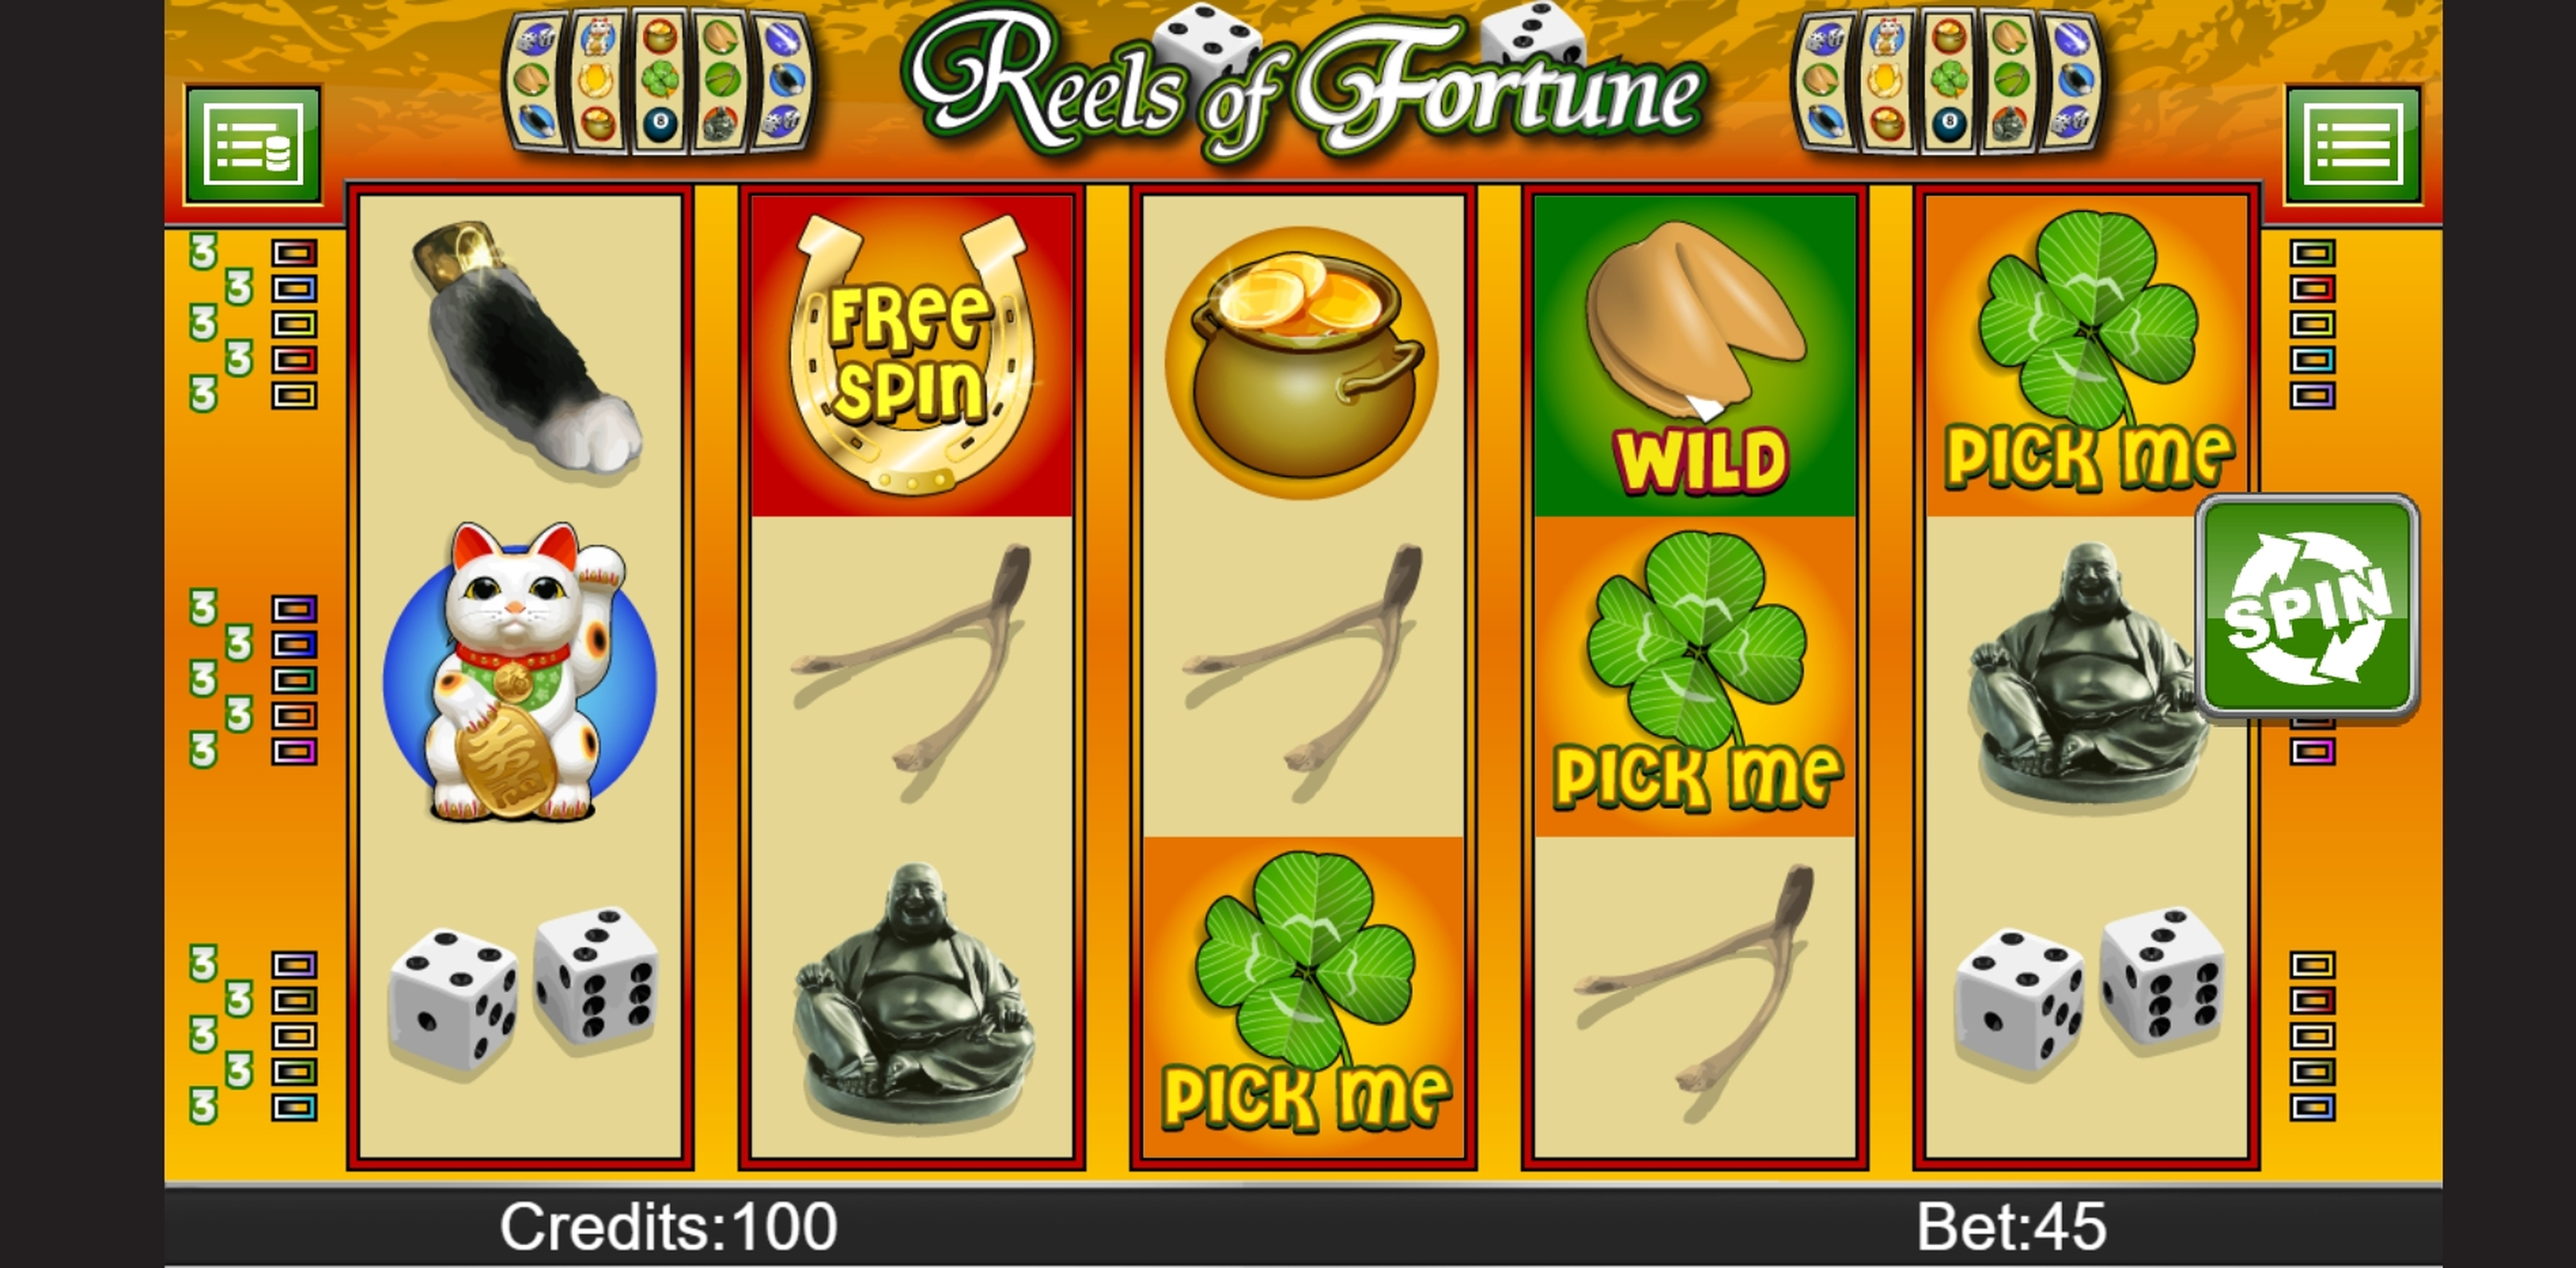 Reels in Reels of Fortune Slot Game by PAF